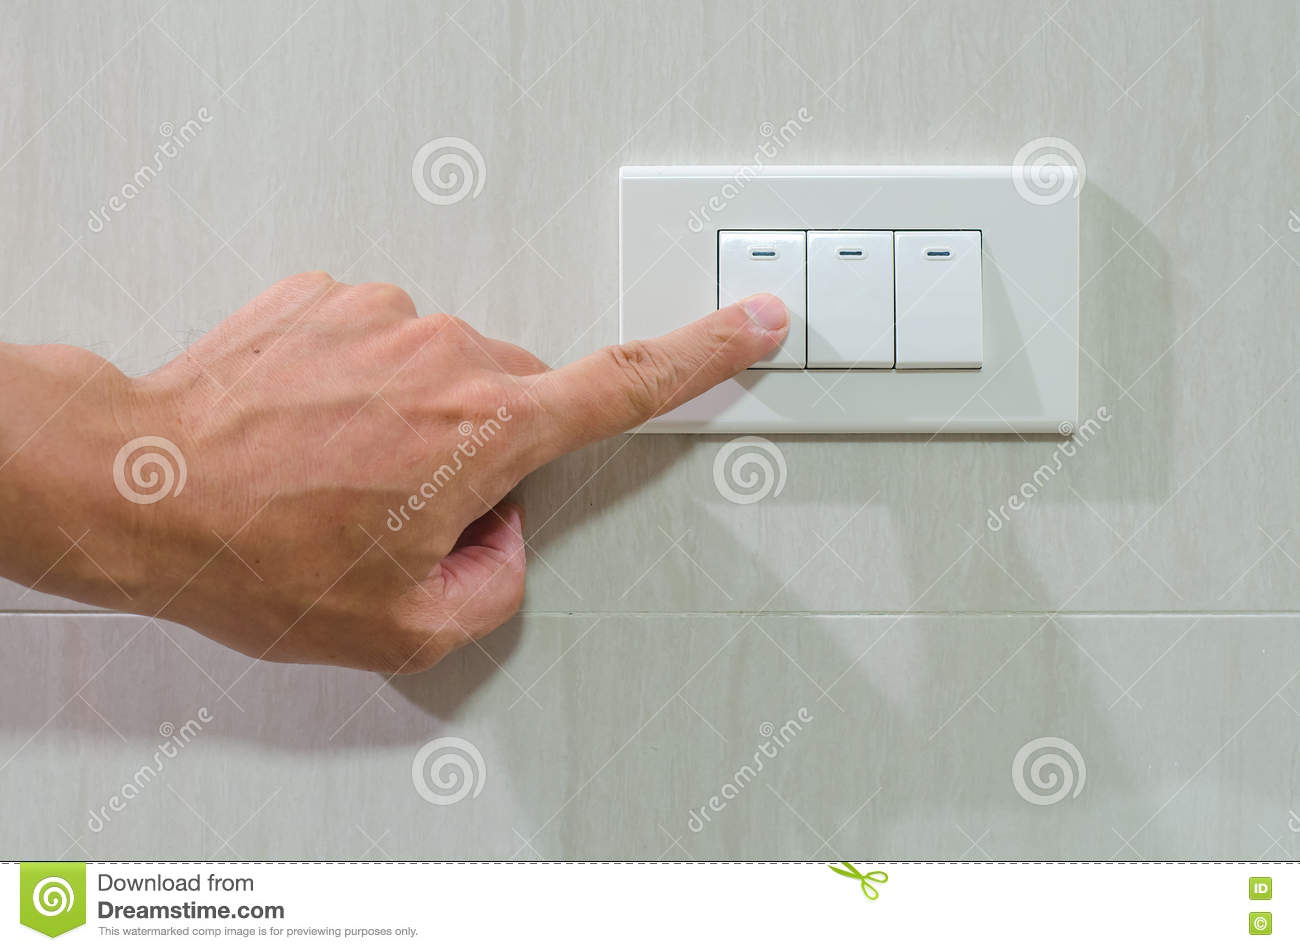 Finger Put Off Switch For Save Energy Concept Stock Photo - Image of ...